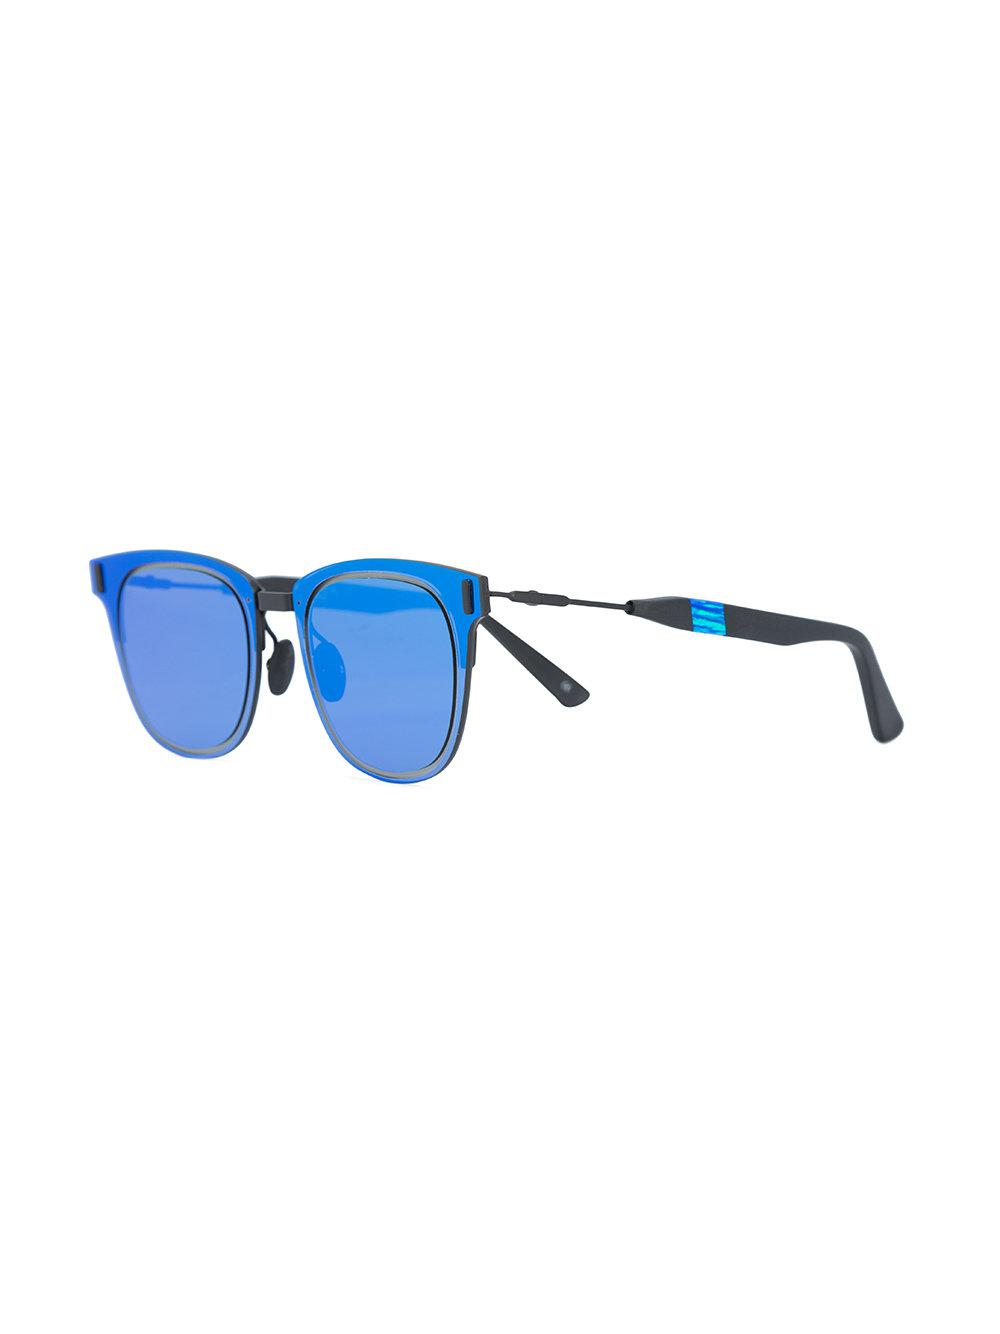 Westward Leaning Mirrorcake 04 sunglasses Clearance 2018 Newest Free Shipping For Nice Fast Delivery Cheap Price Clearance Official Site Buy Cheap For Cheap FUNYyiK5l